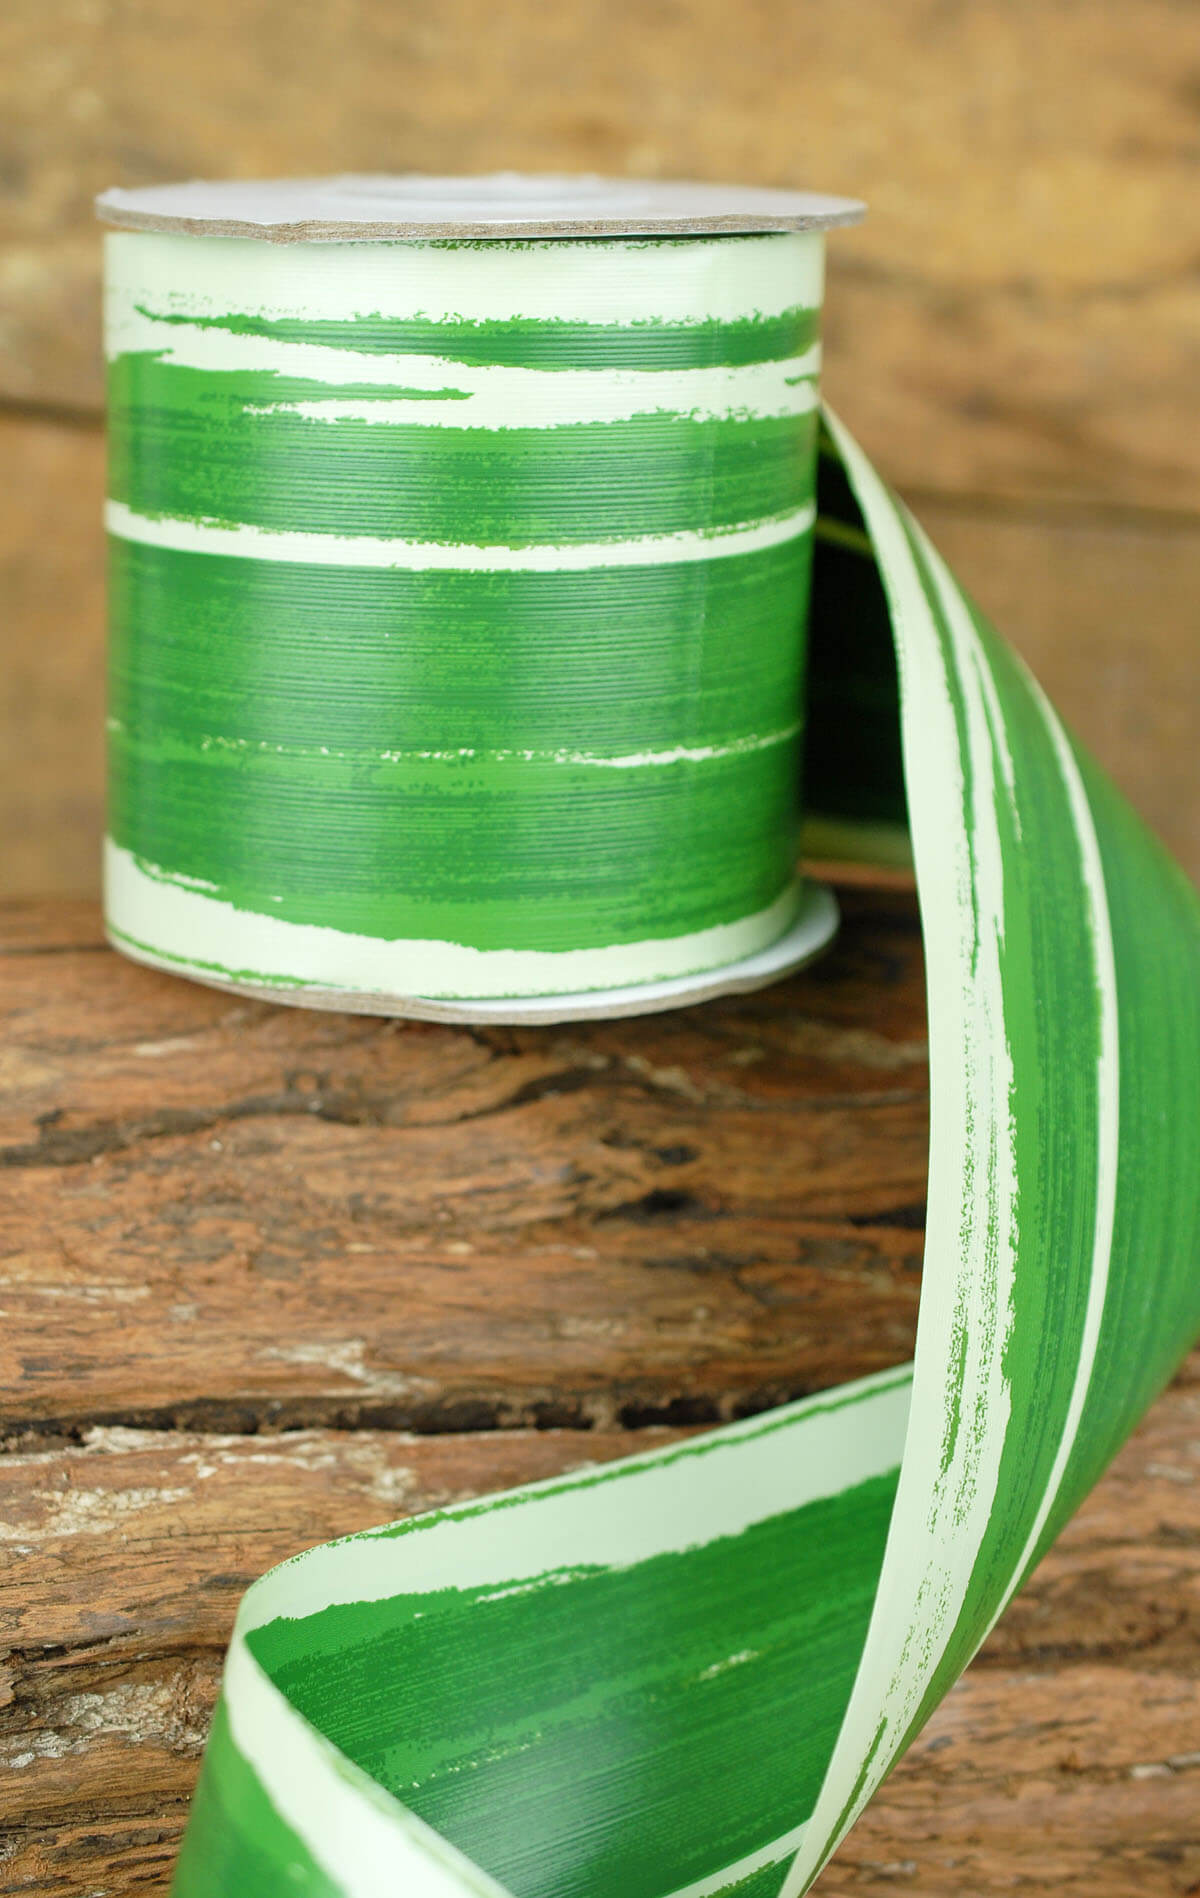 Aspidistra Floral Ribbon Variegated Green 4in x 50yd